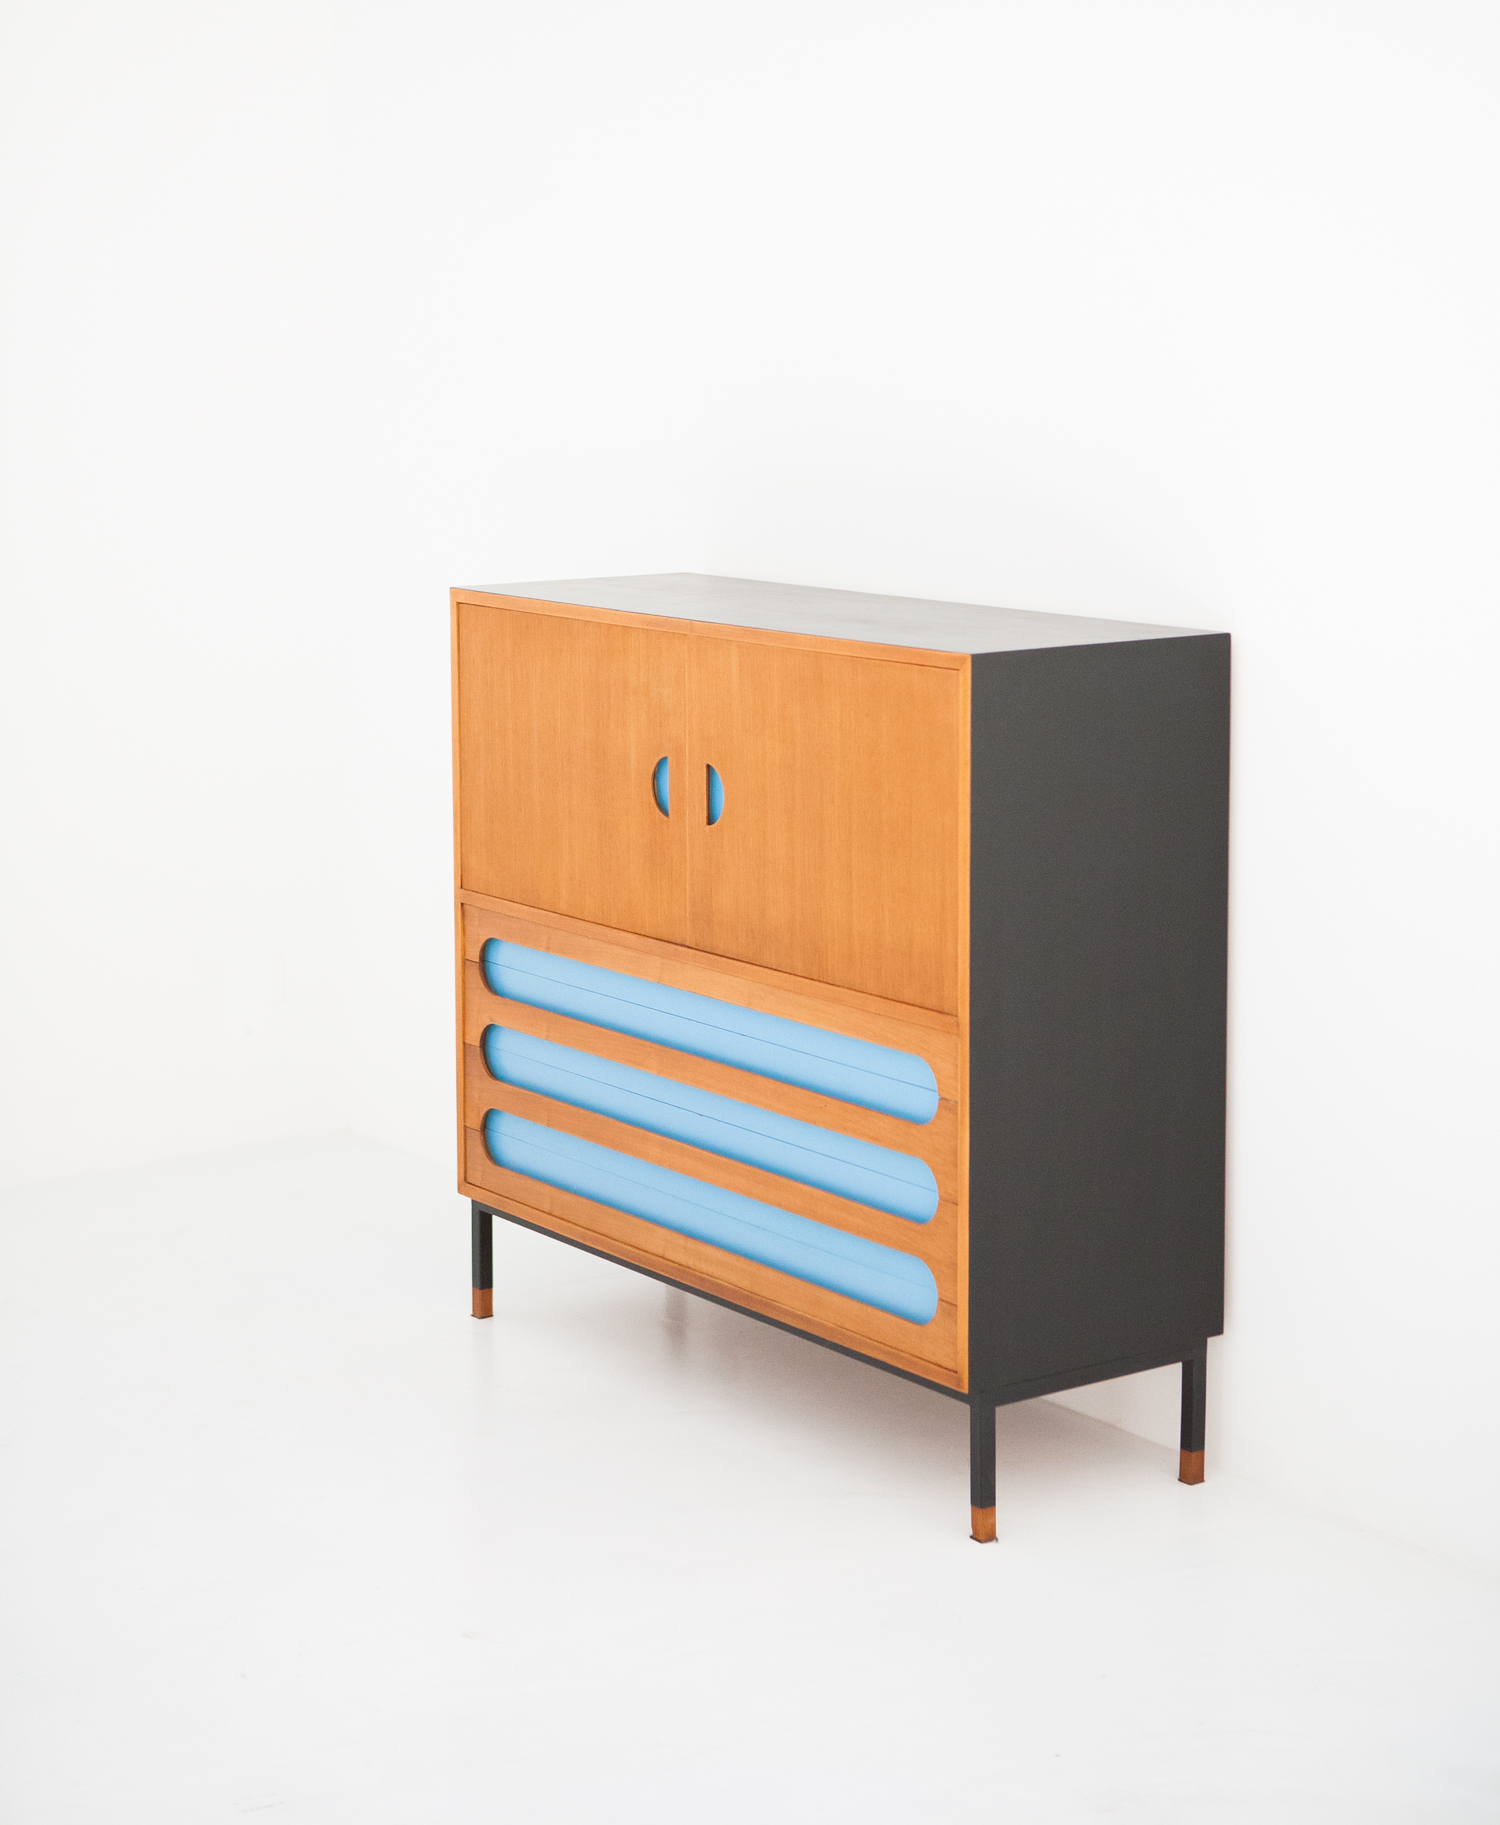 Sideboard 78 6 retro4m for Sideboard 4 meter lang